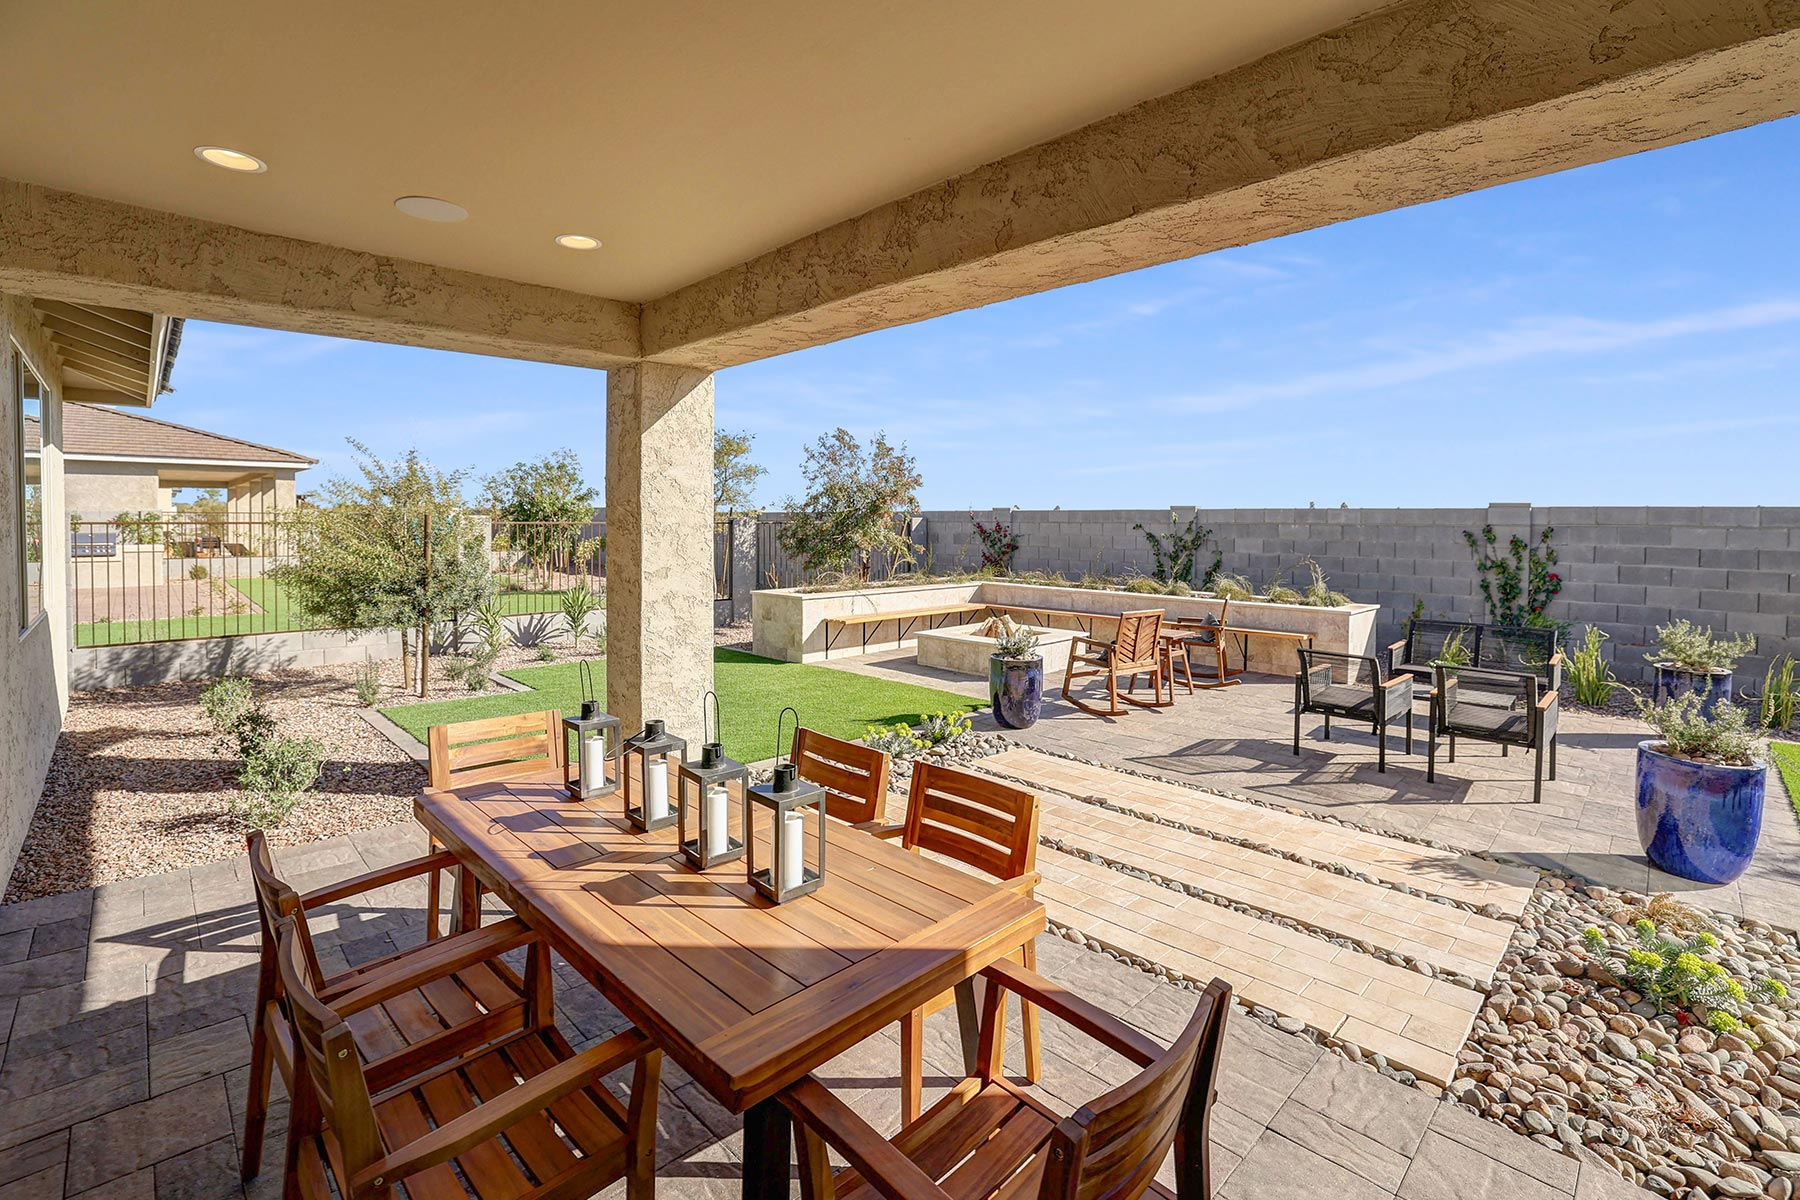 Bellwood Plan Patio at Azure Canyon in Goodyear Arizona by Mattamy Homes